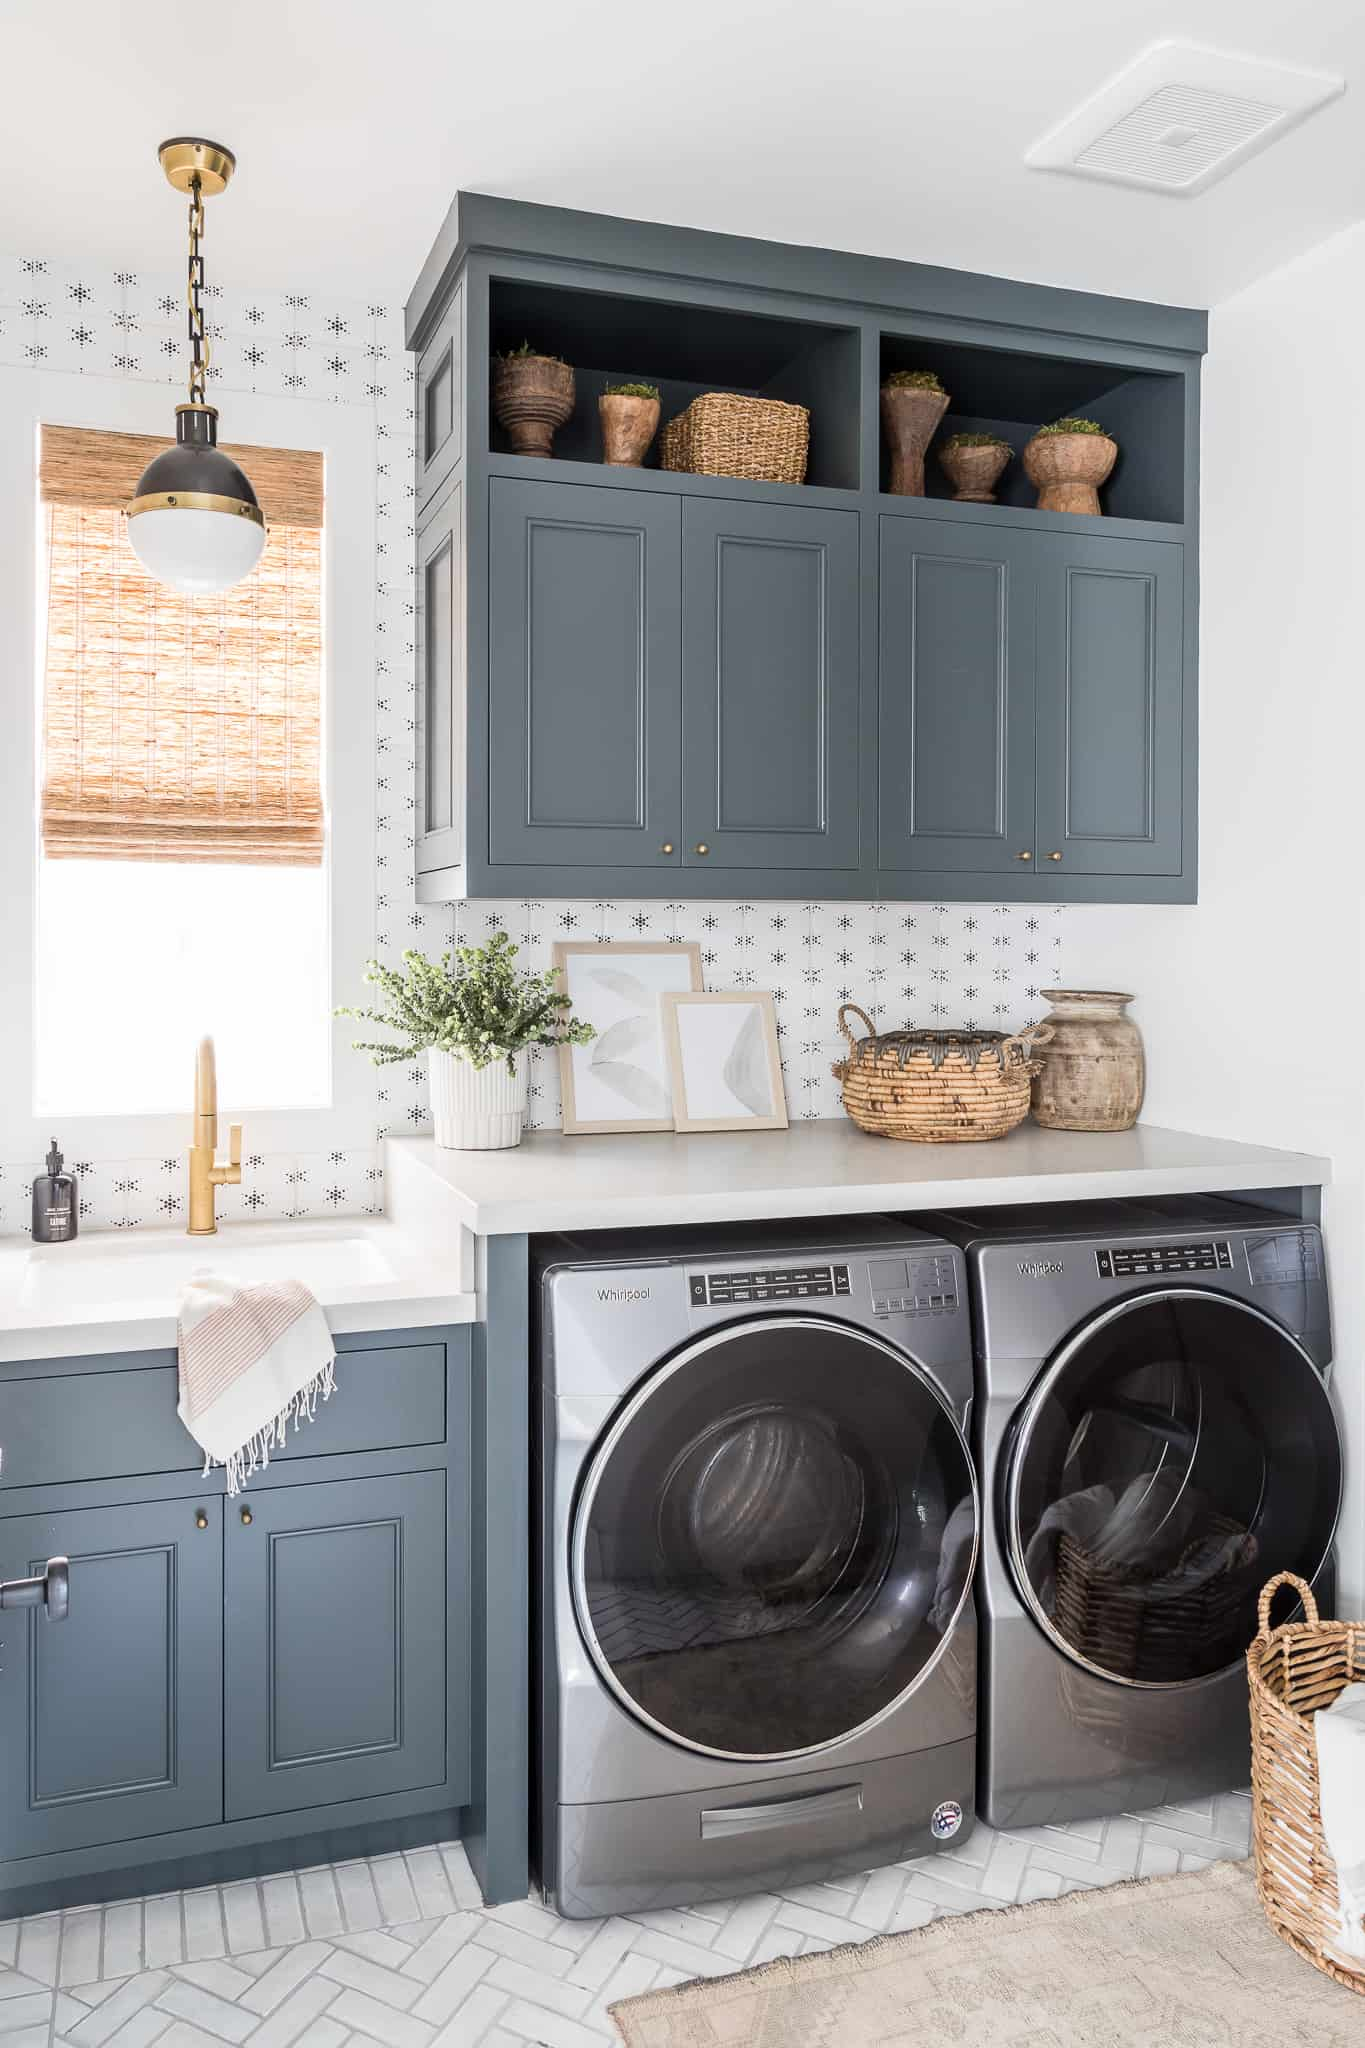 Get The Look: Marigold Laundry Room Inspiration - Mindy Gayer Design Co.